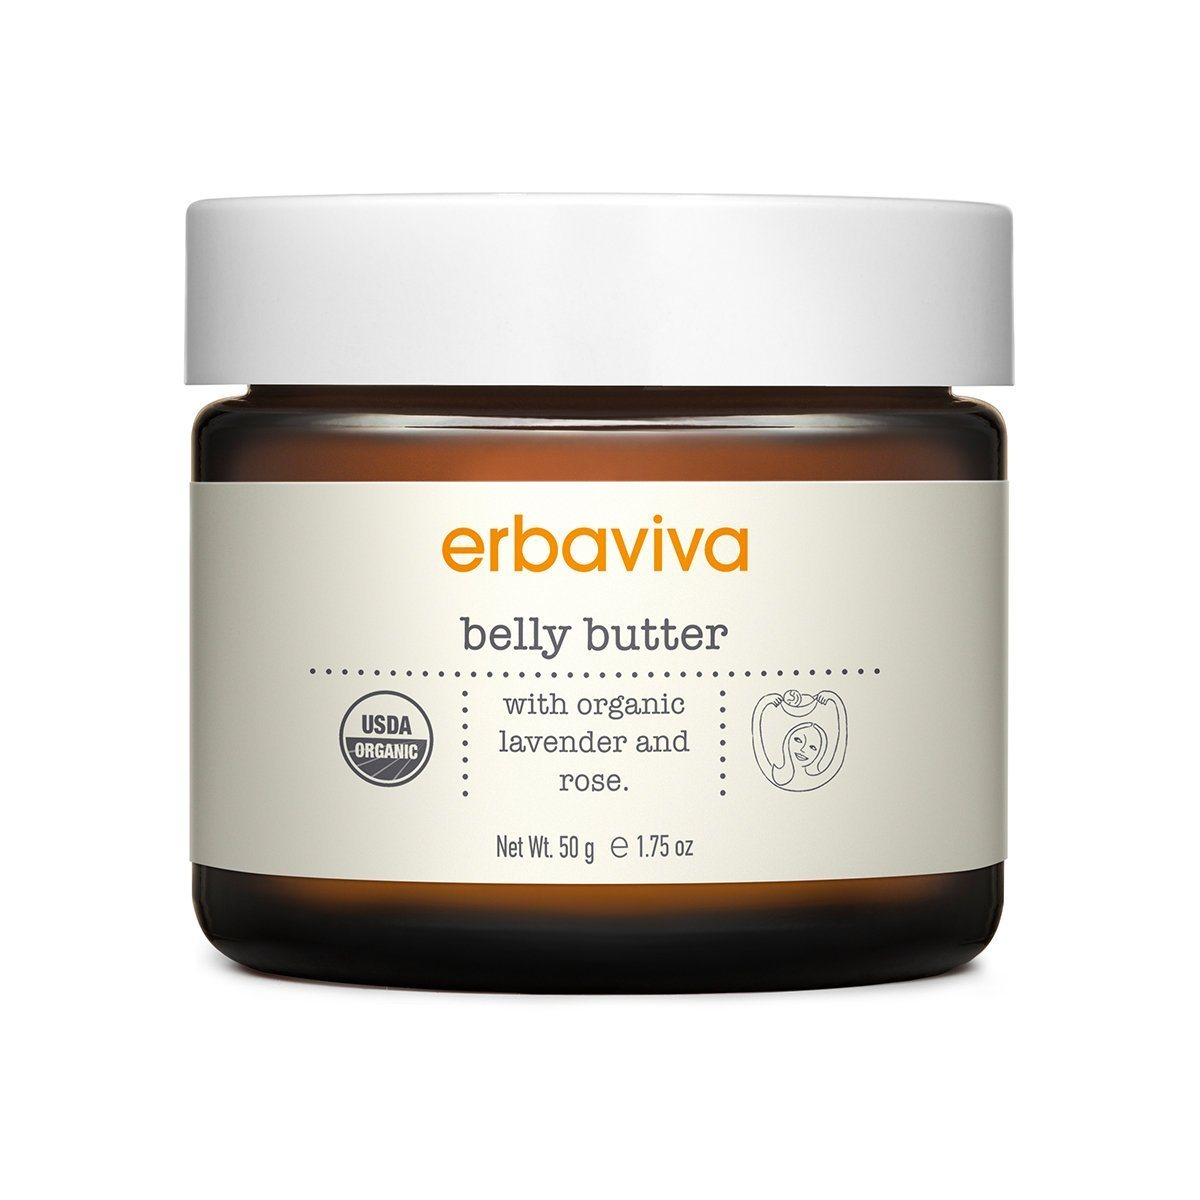 Erbaviva Belly Butter - Switch 2 Pure